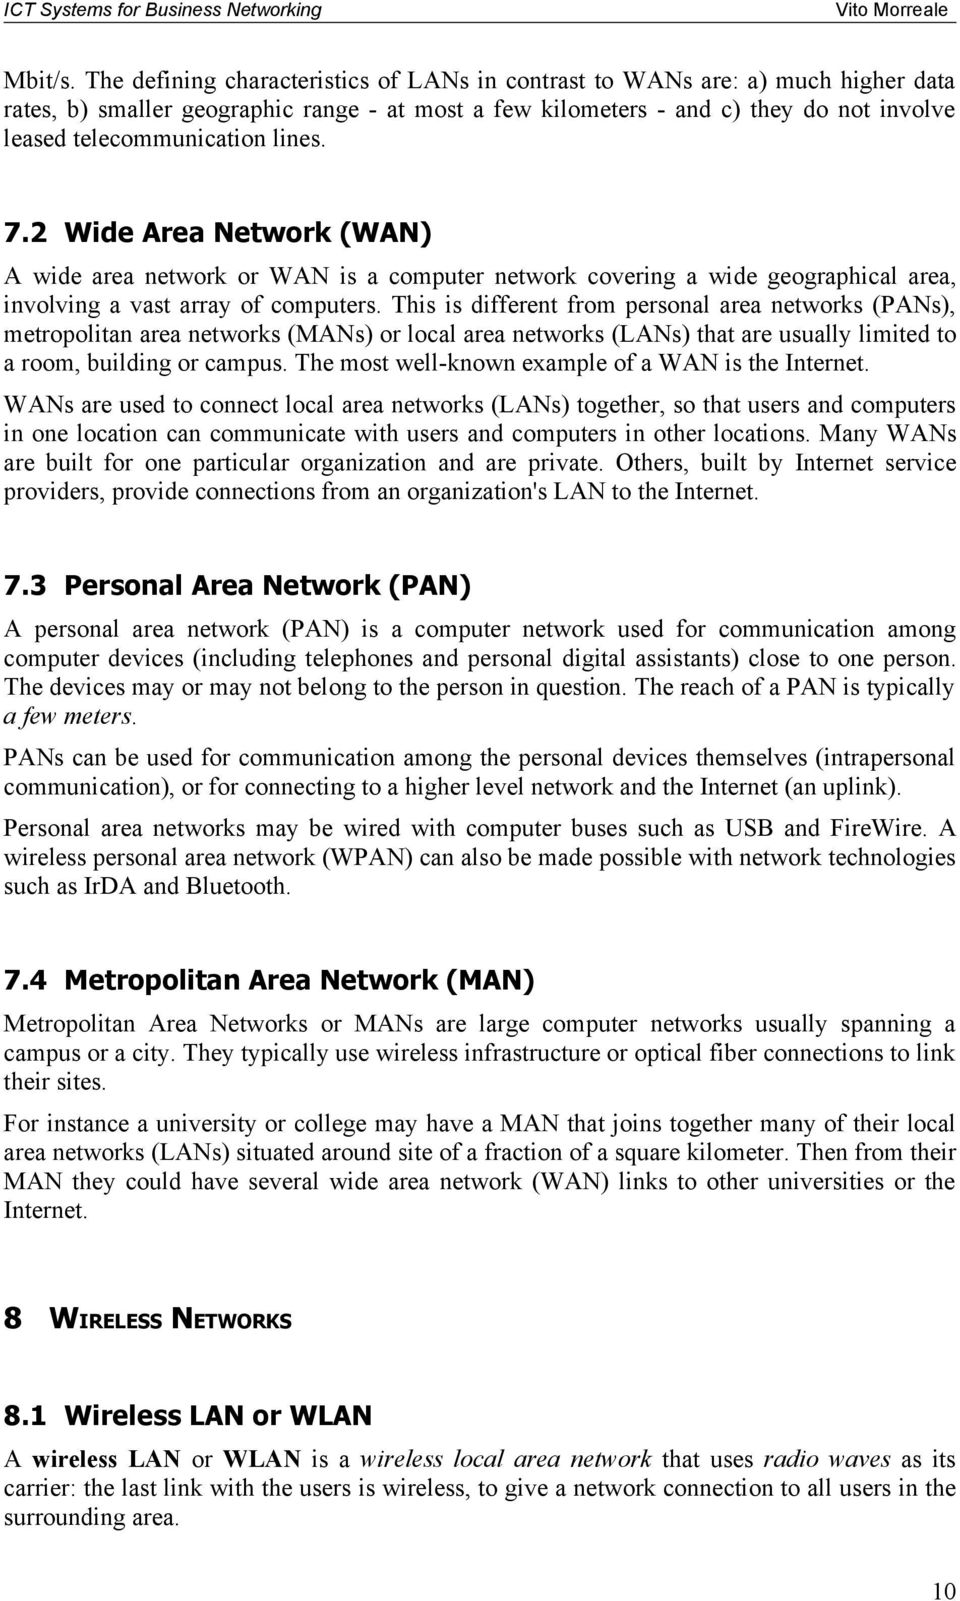 lines. 7.2 Wide Area Network (WAN) A wide area network or WAN is a computer network covering a wide geographical area, involving a vast array of computers.